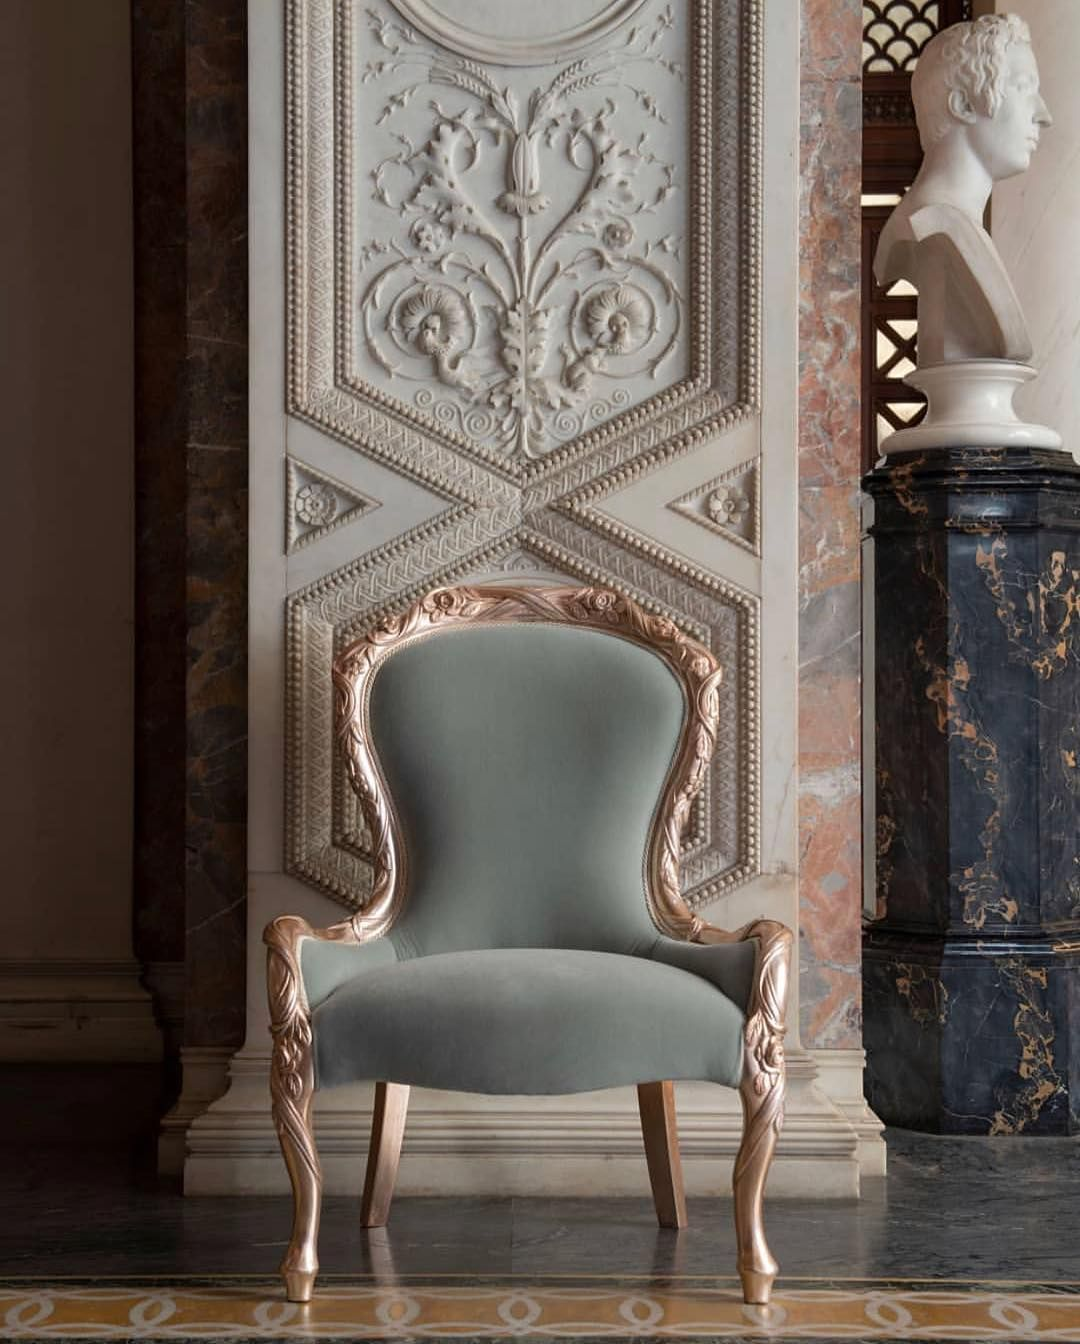 New The 10 Best Home Decor With Pictures Luxury Italian Furniture Tag Someone That Should See This Luxury Italian Furniture Furniture Italian Furniture